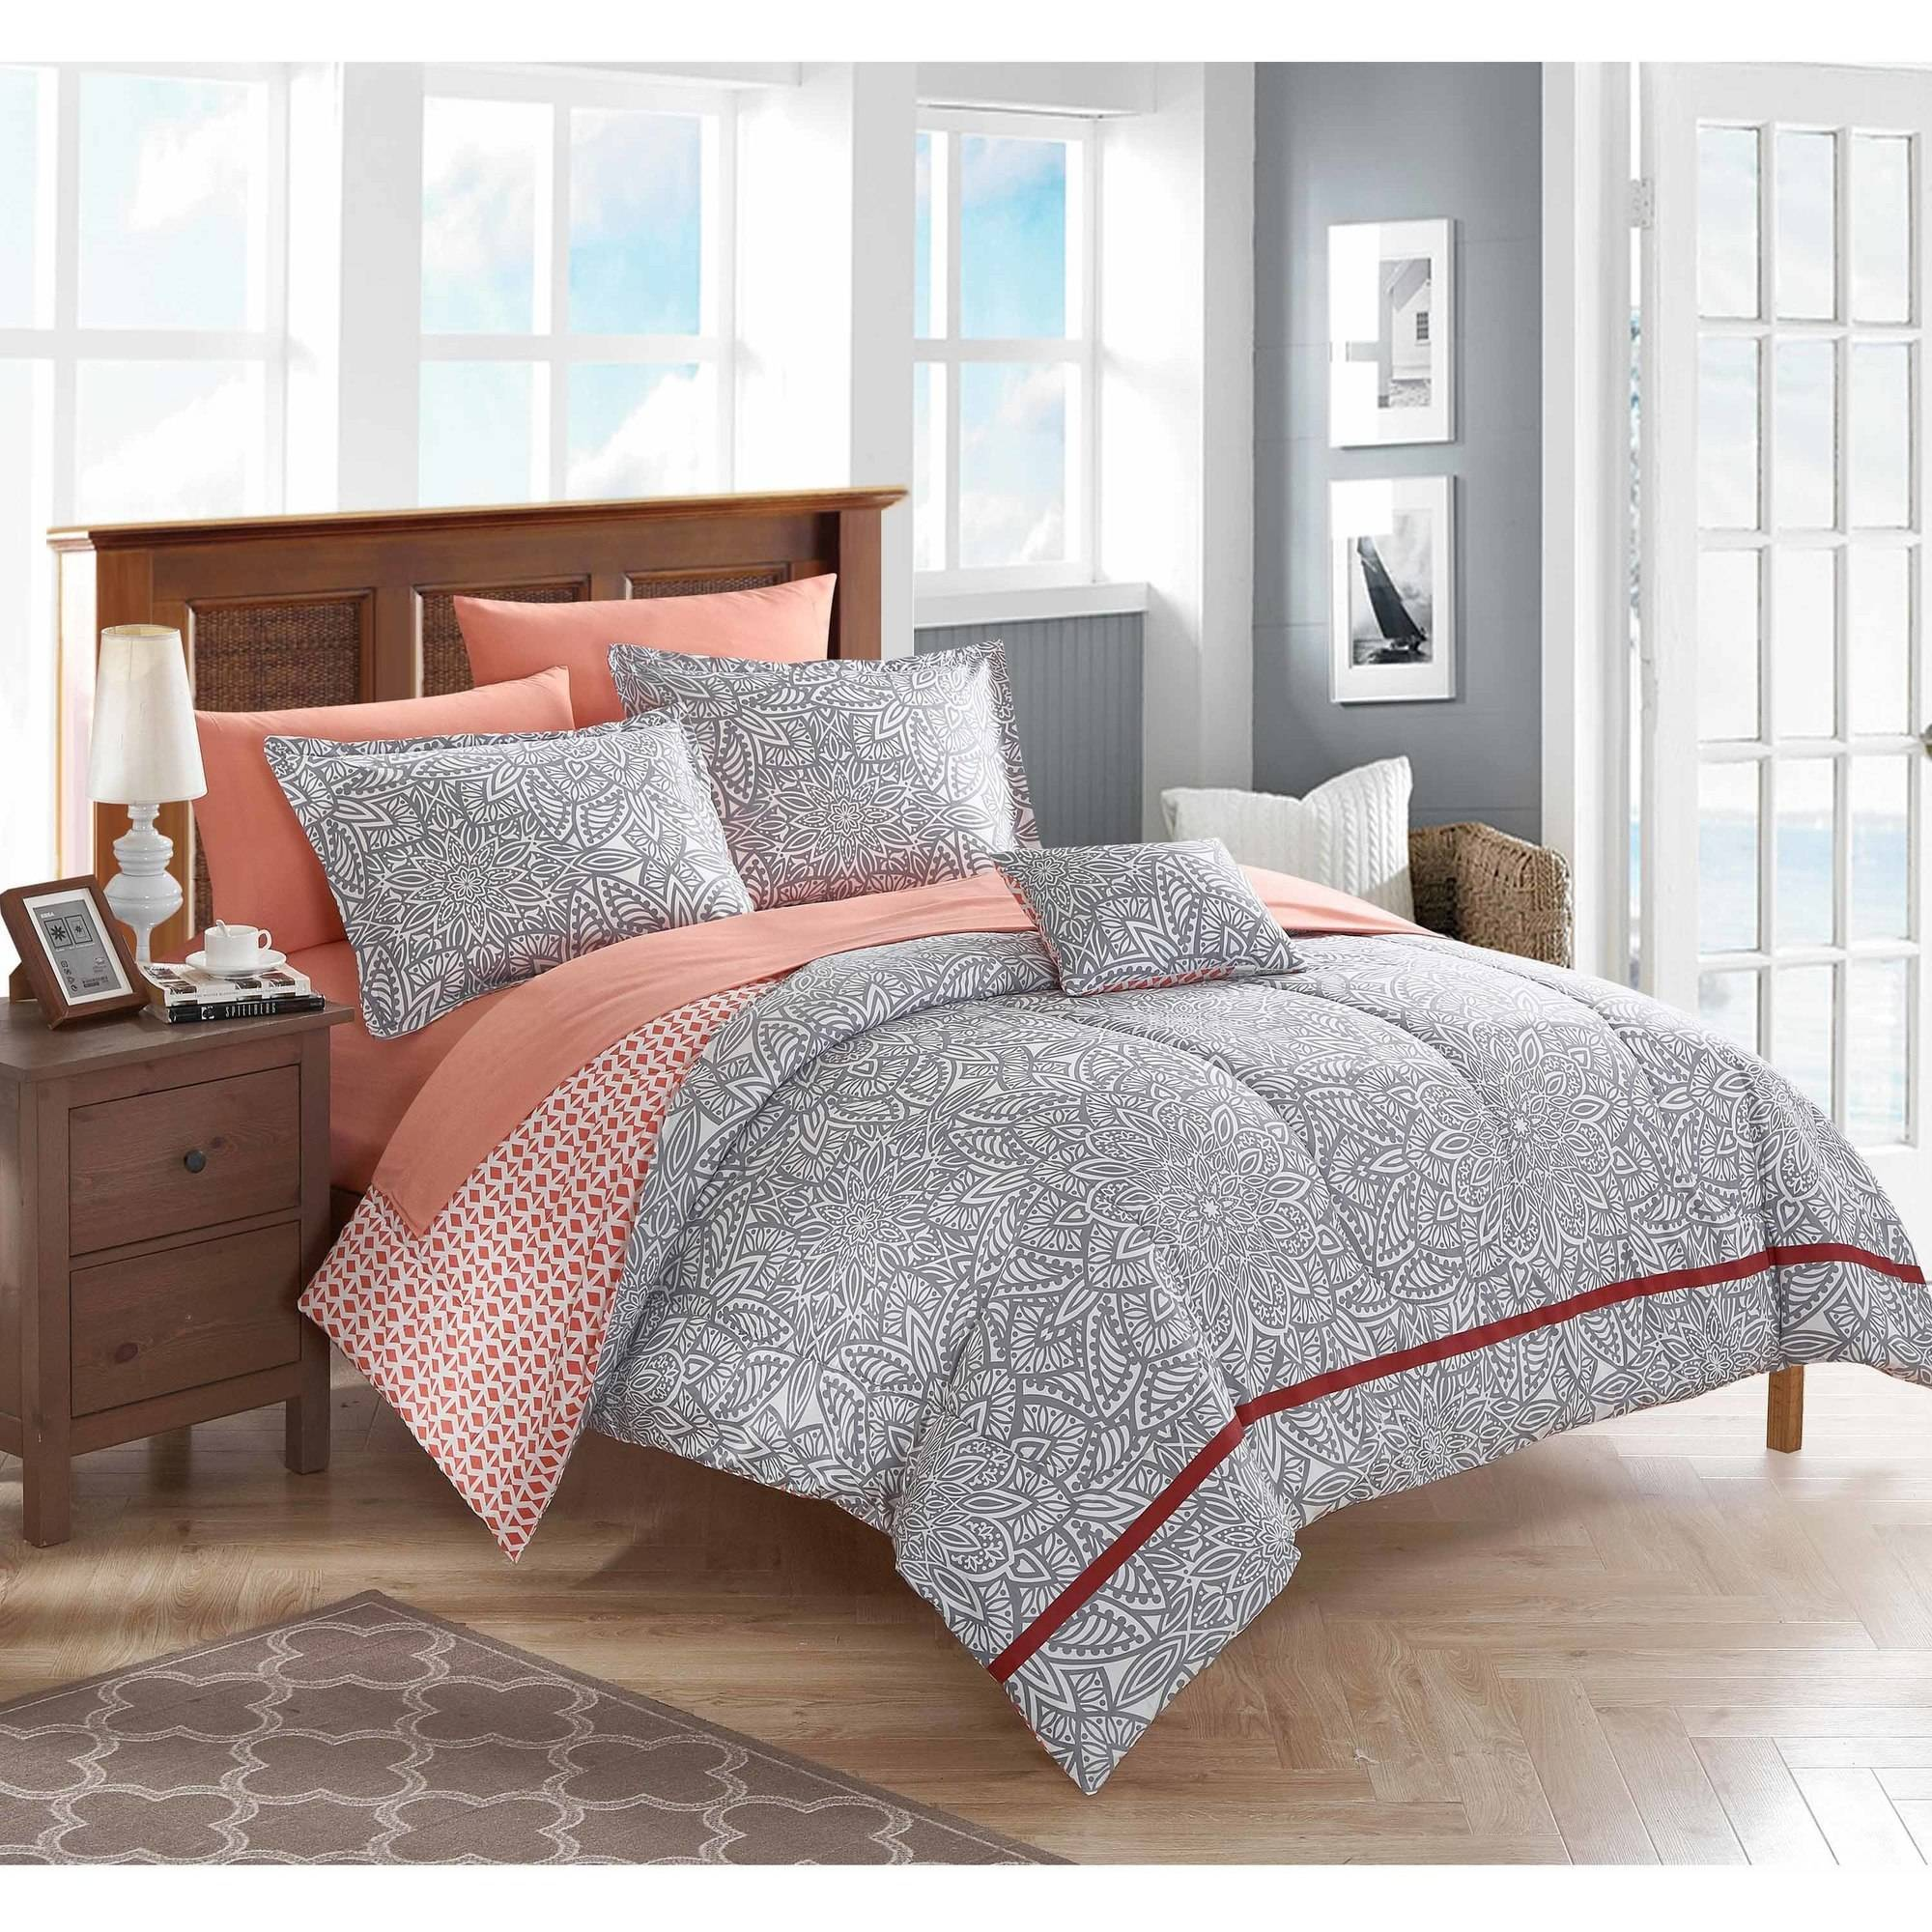 Mainstays Aria Bed-In-A-Bag Bedding Set